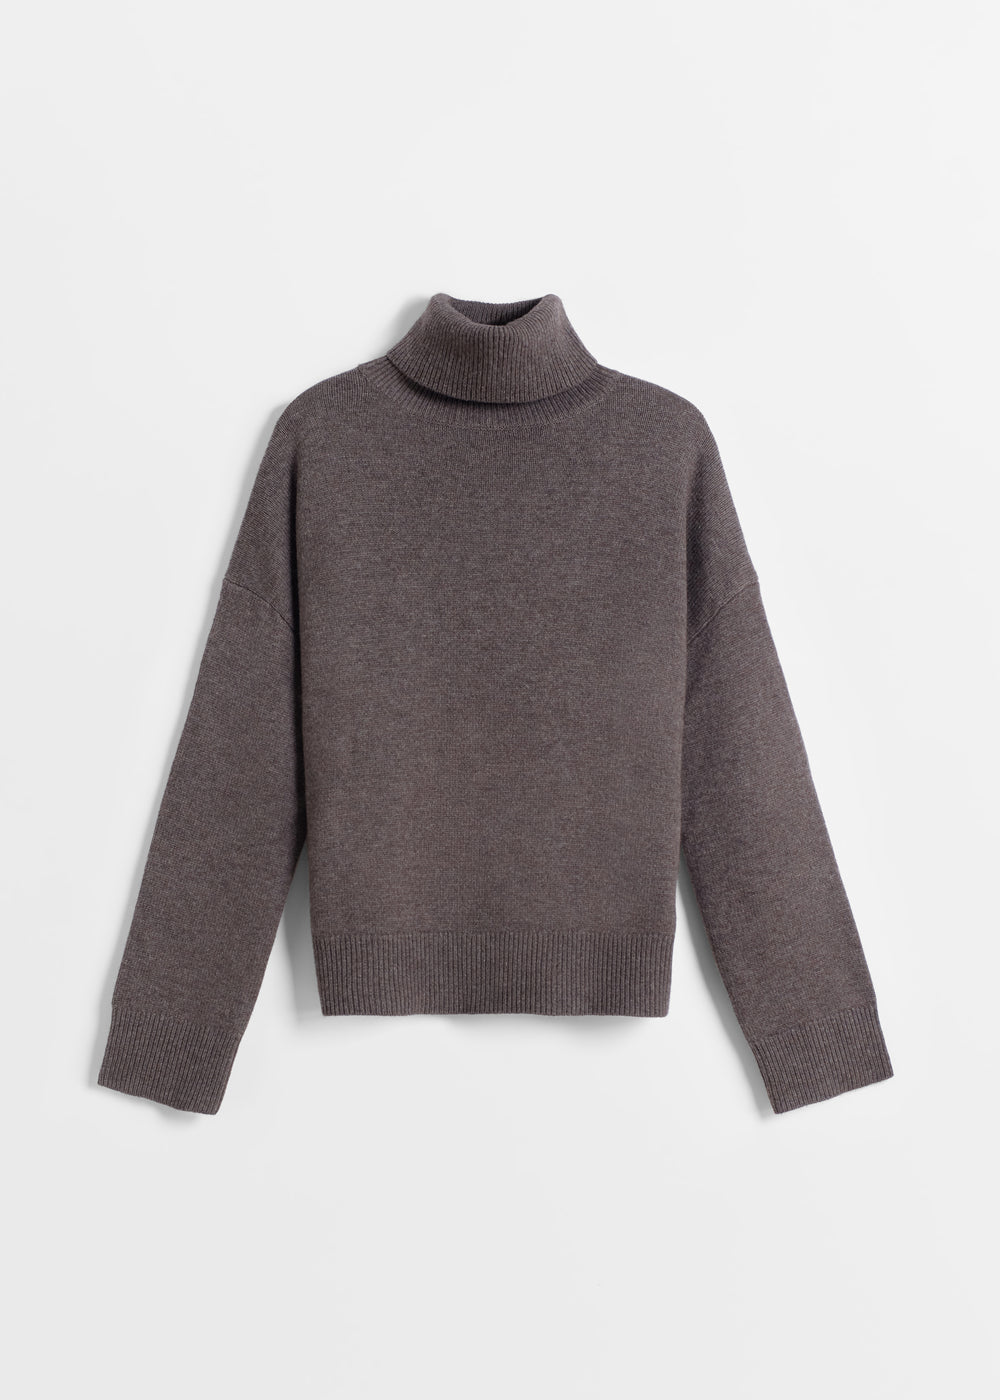 Boxy Turtleneck Sweater in Wool Cashmere - Navy in Brown by Co Collections